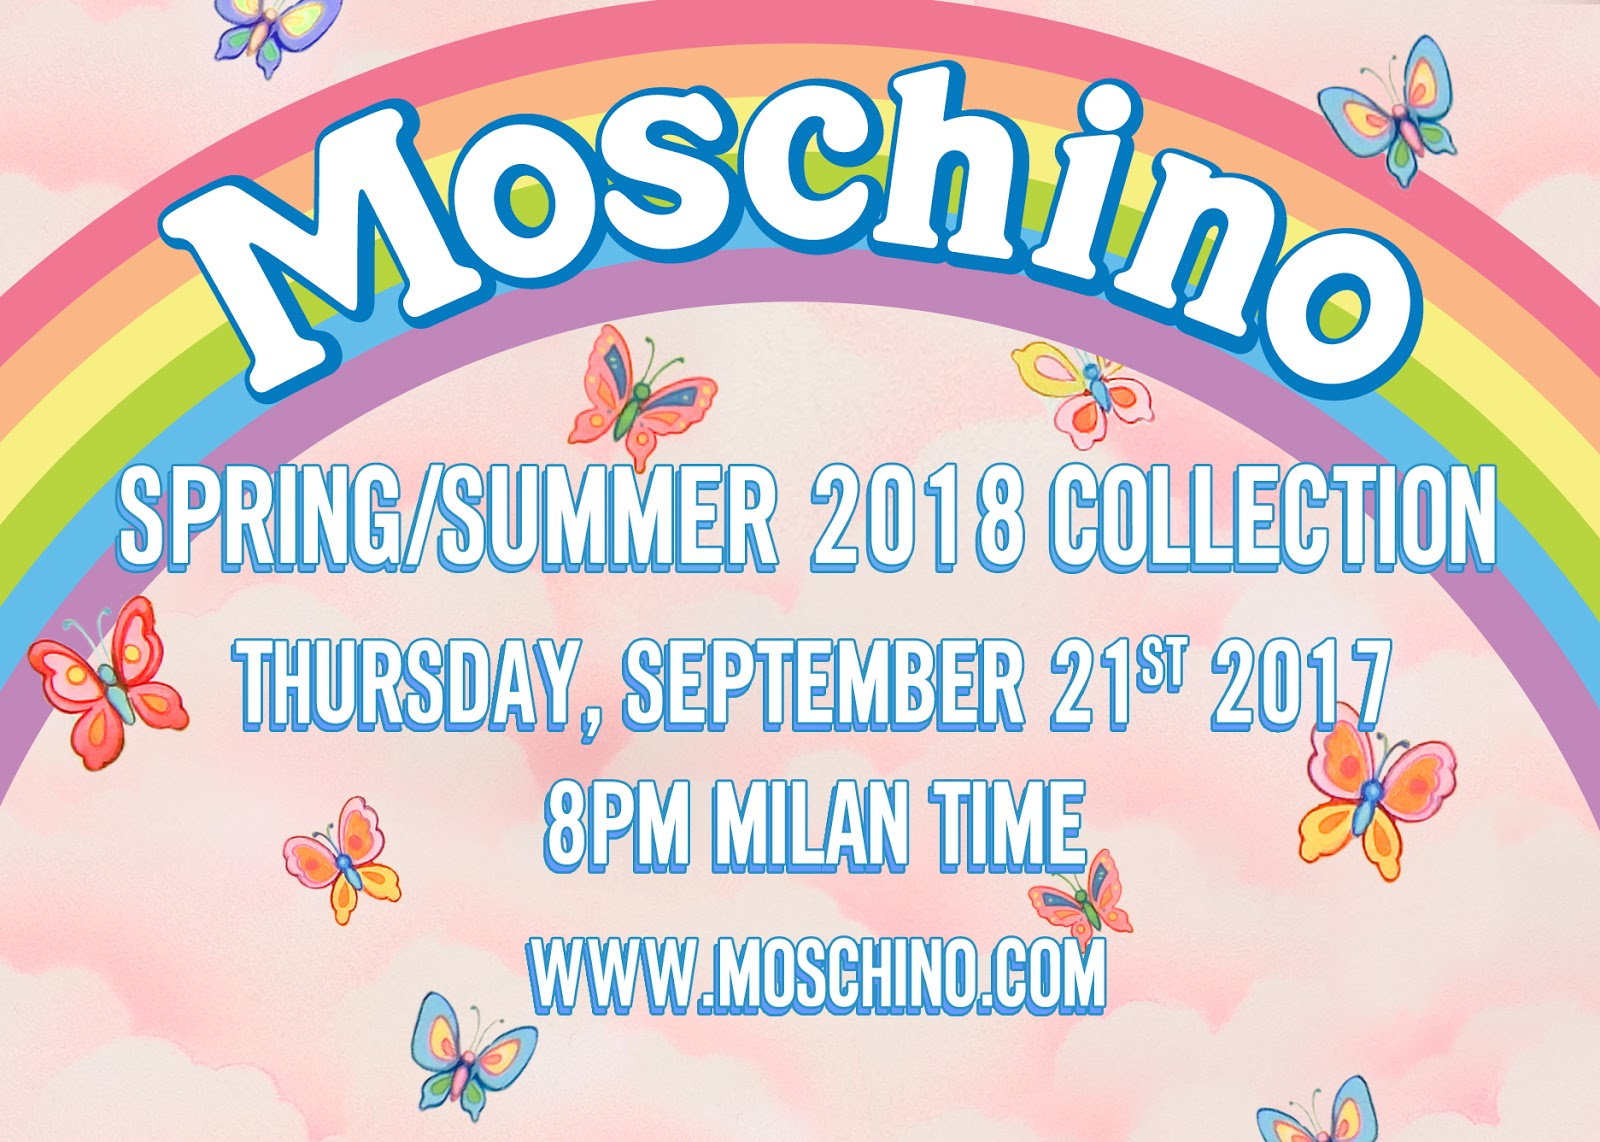 Watch Moschino's SS18 Show LIVE from Milan Fashion Week HERE TONIGHT!